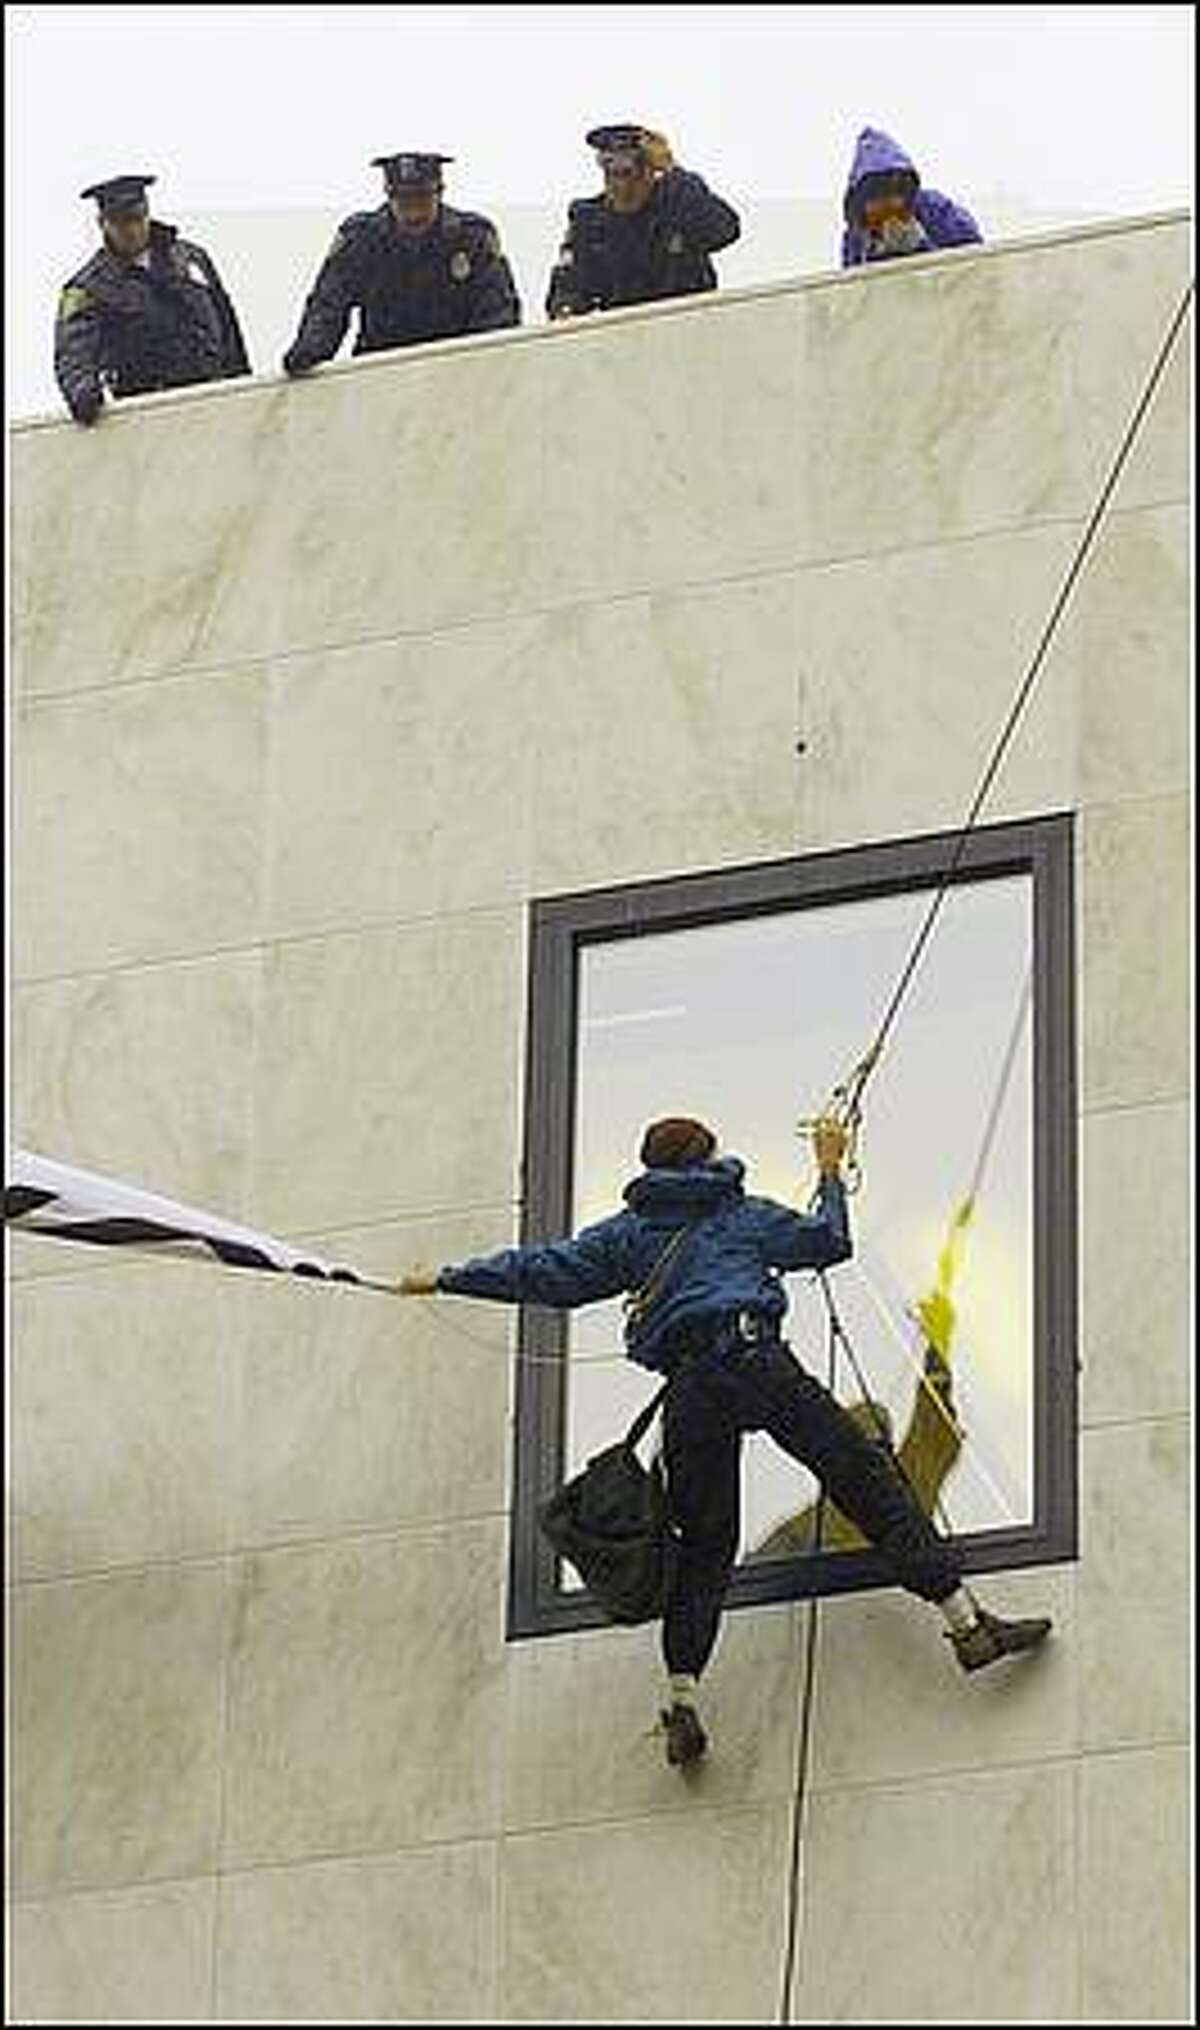 Photo By Mike Urban Seattle Post-Intelligencer 11/22/99 - WTO protestor Seth Quackenbush releases a cloth protest sign before ascending his climbing ropes into the hands of waiting Seattle police officers atop the Old Navy store in downtown Seattle. Quackenbusk and a fellow protestor hung from the building for about two hours before being arrested.